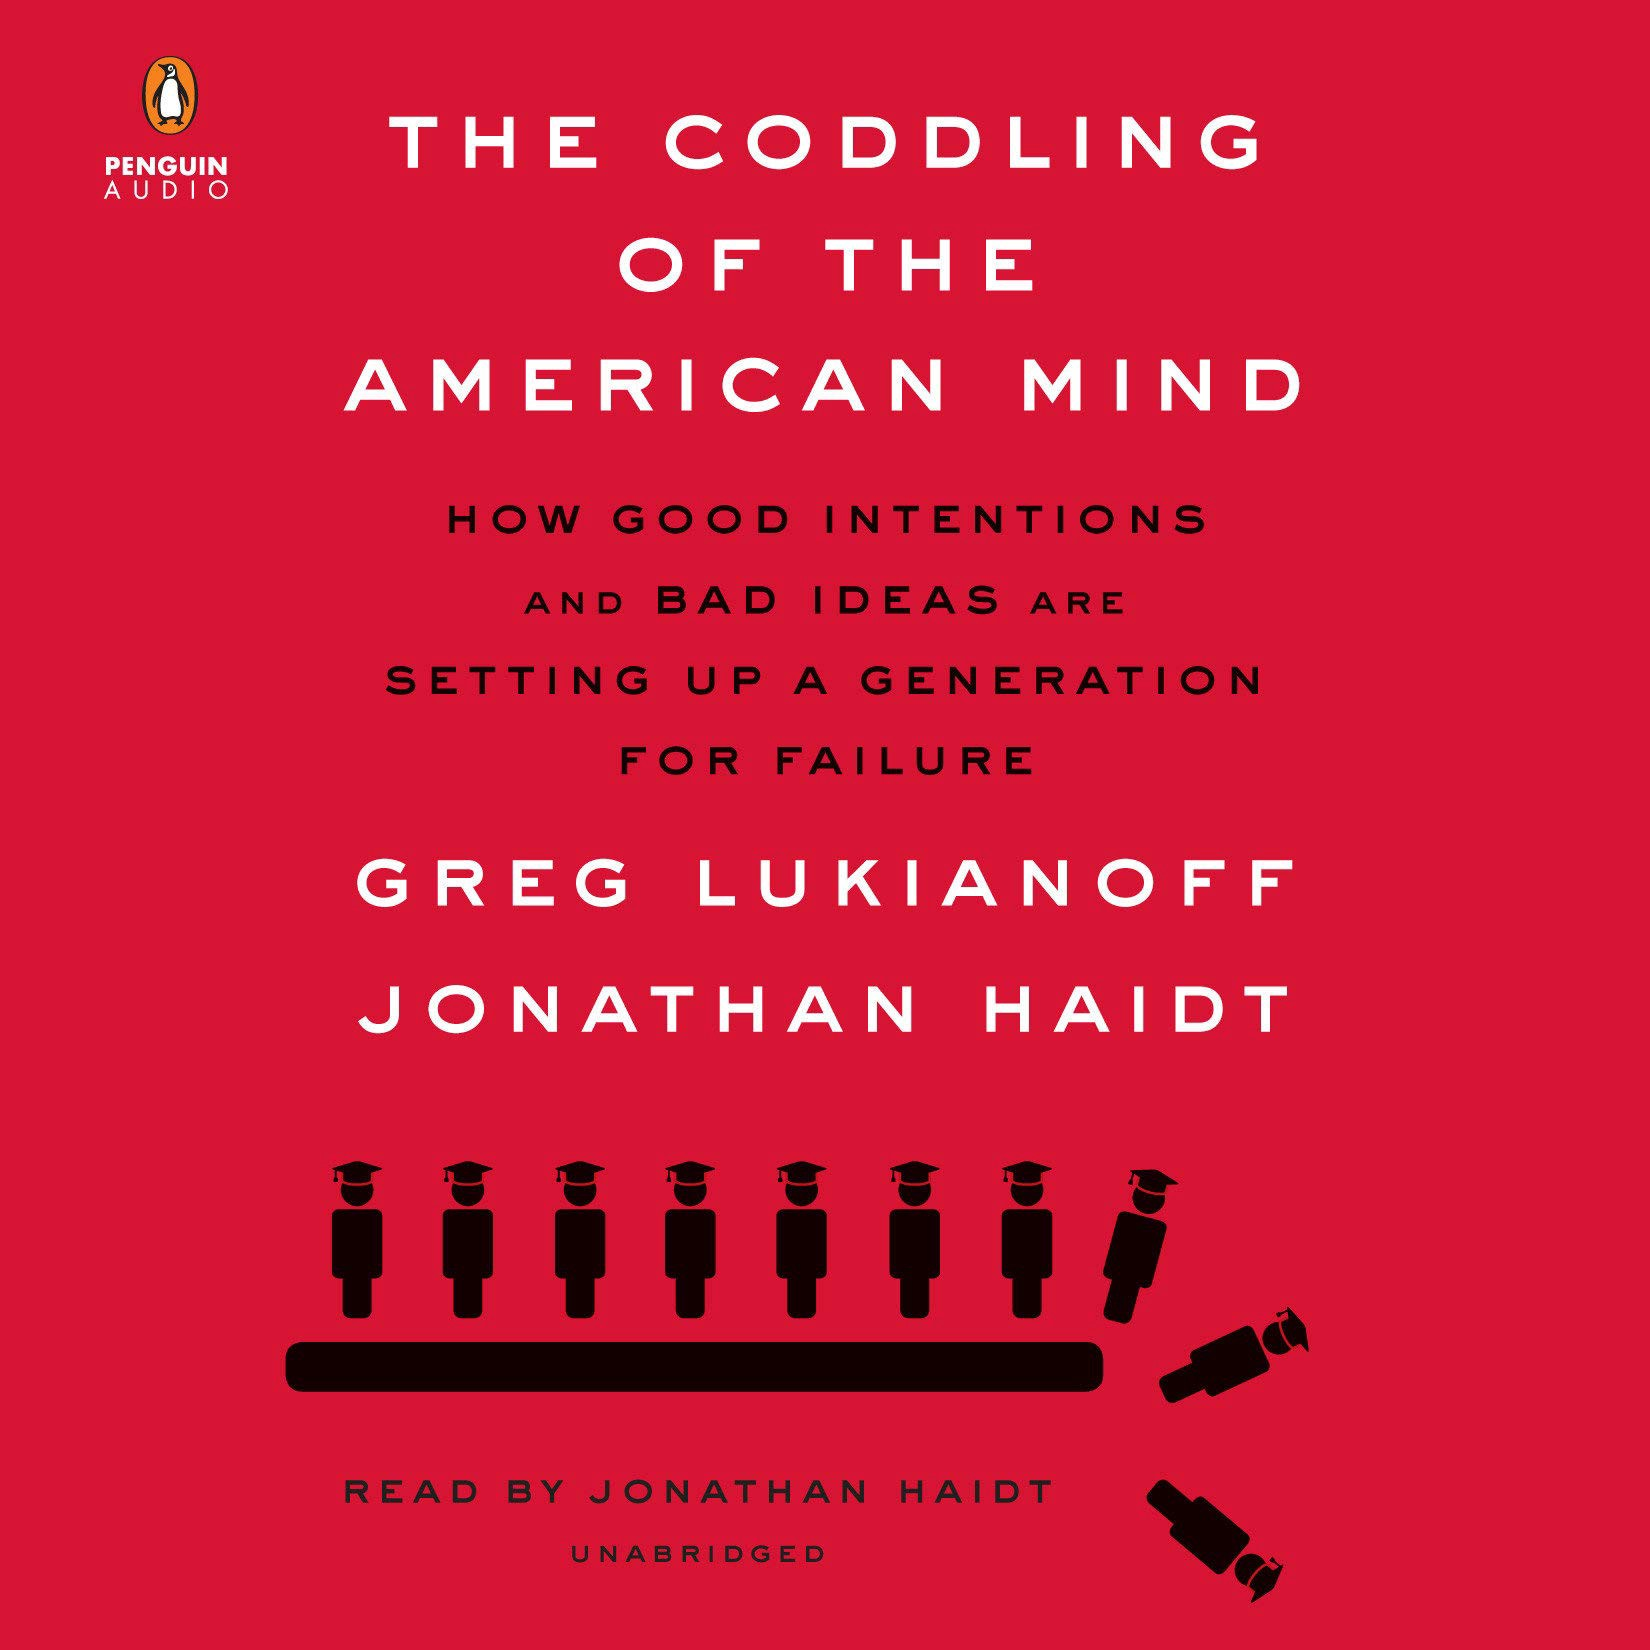 The Coddling of the American Mind—How good intentions and bad ideas are setting up a generation for failure